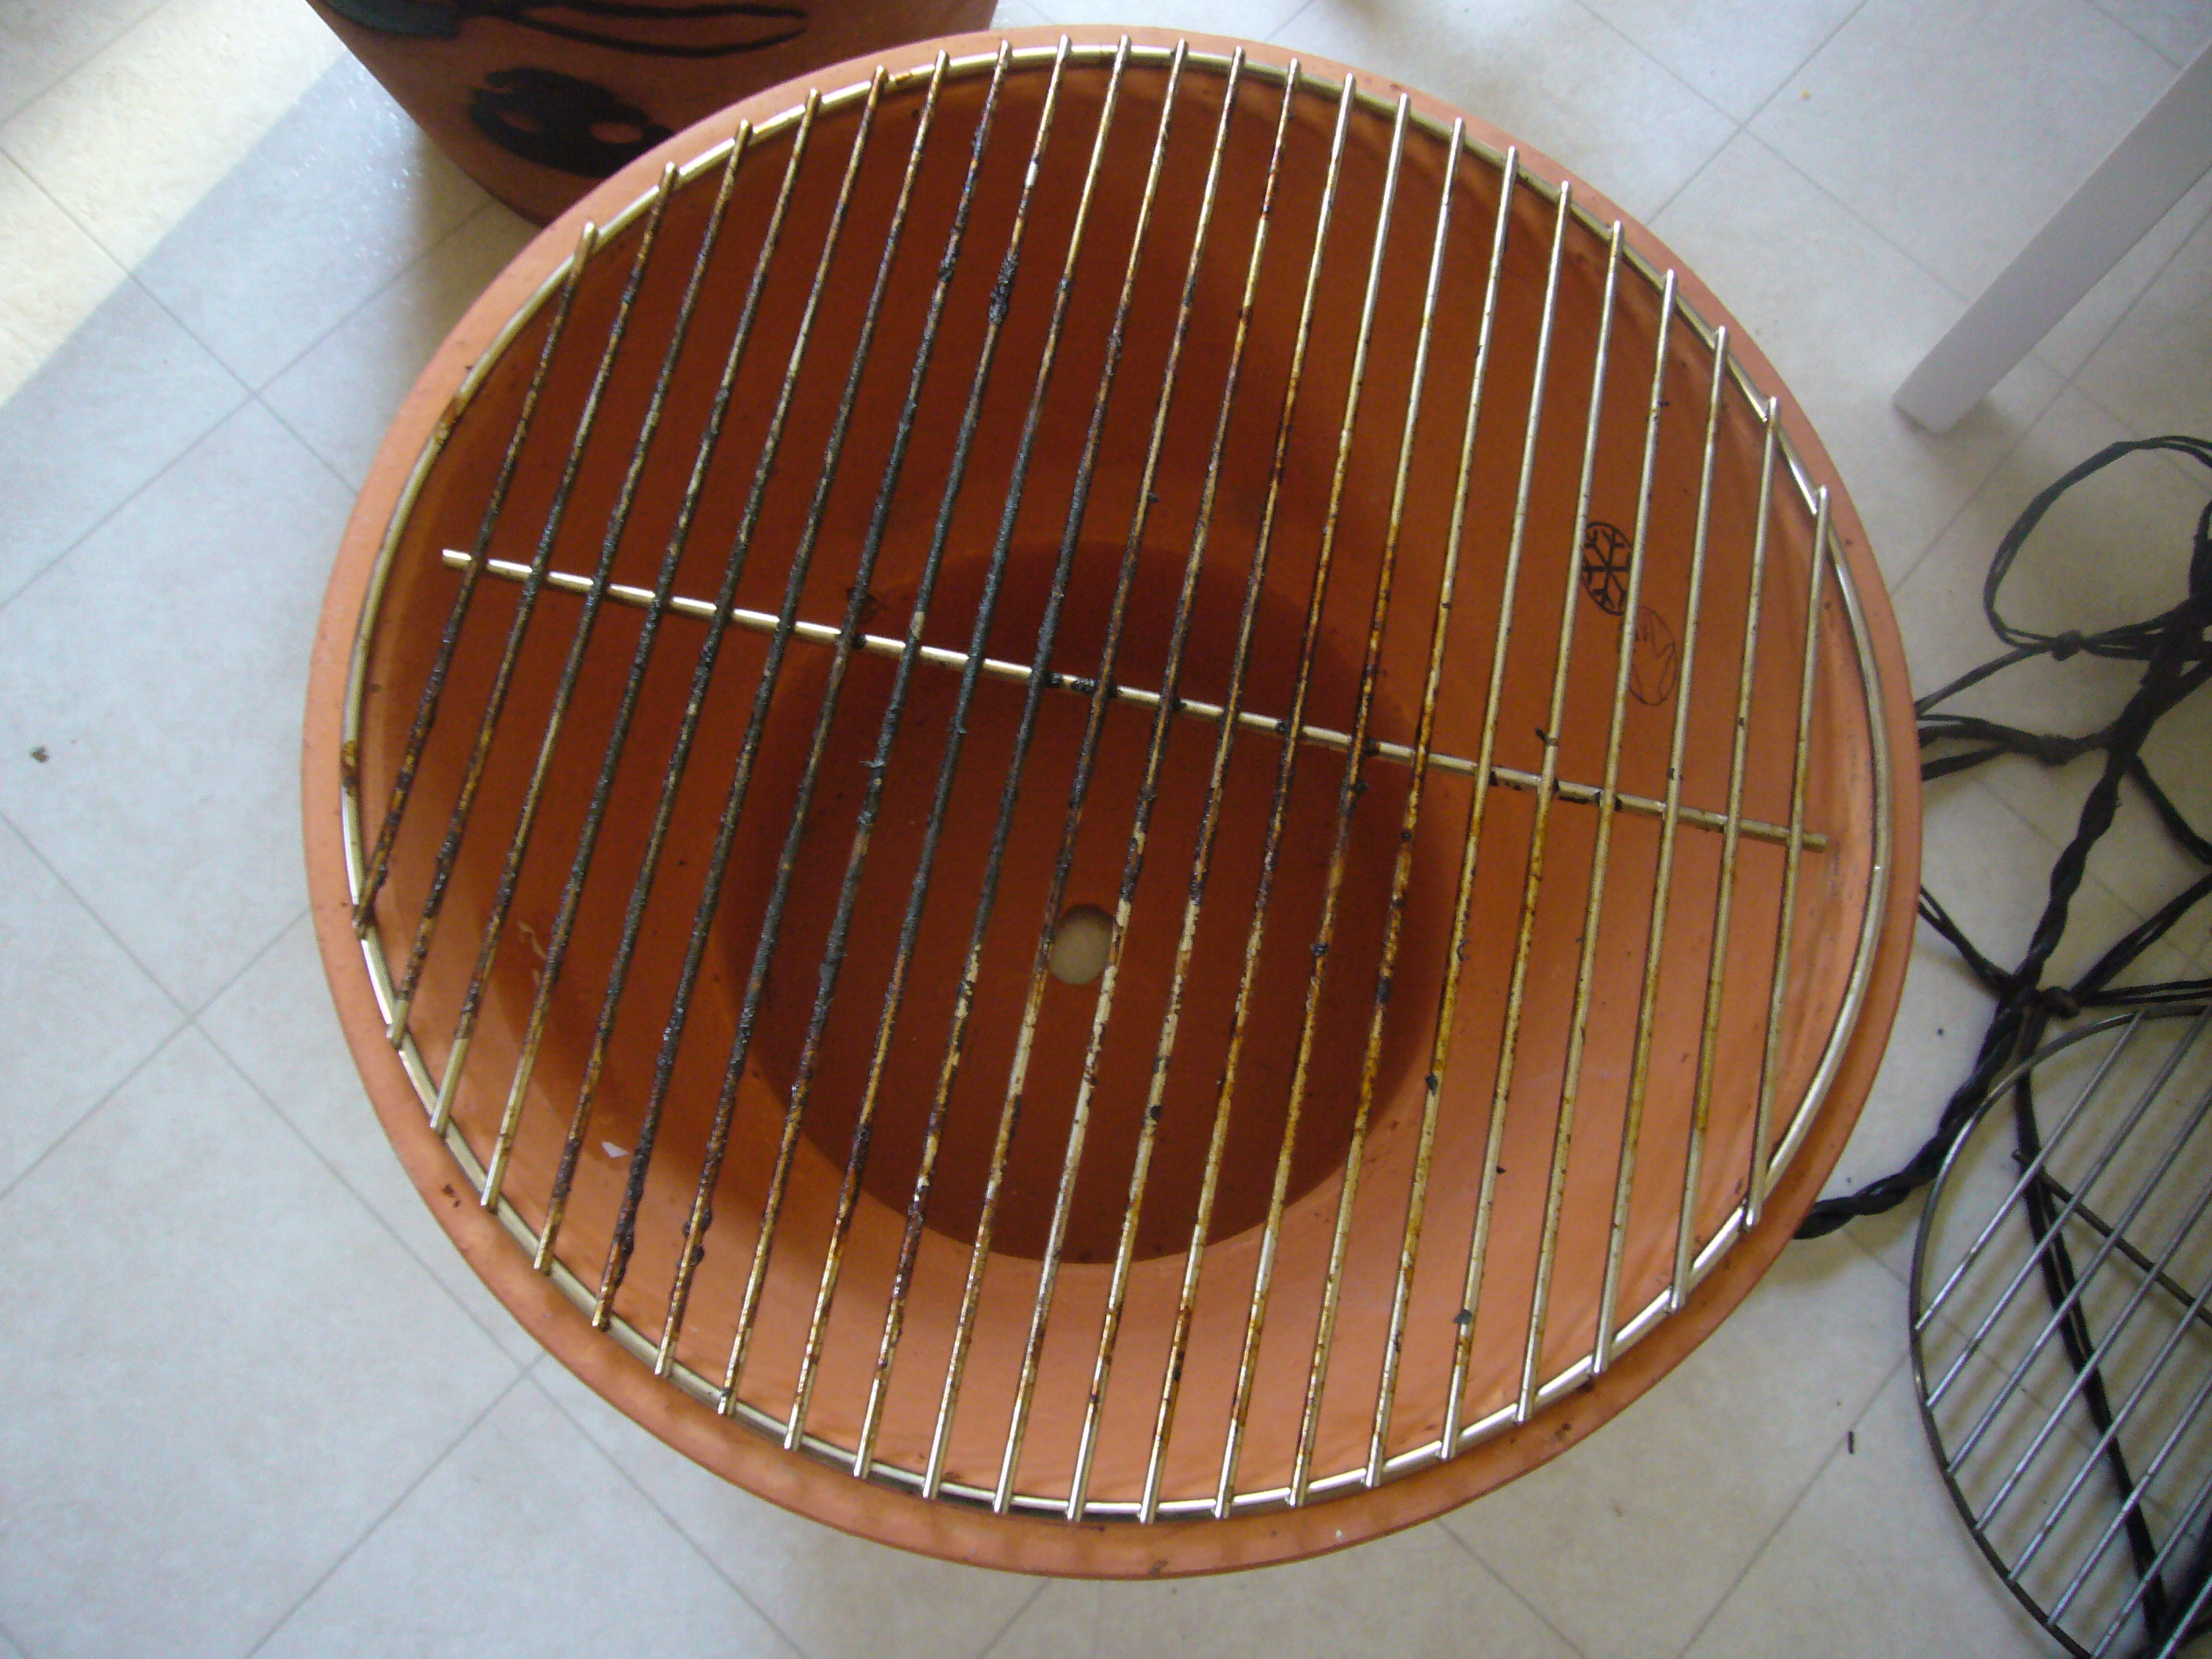 Picture of Grill!